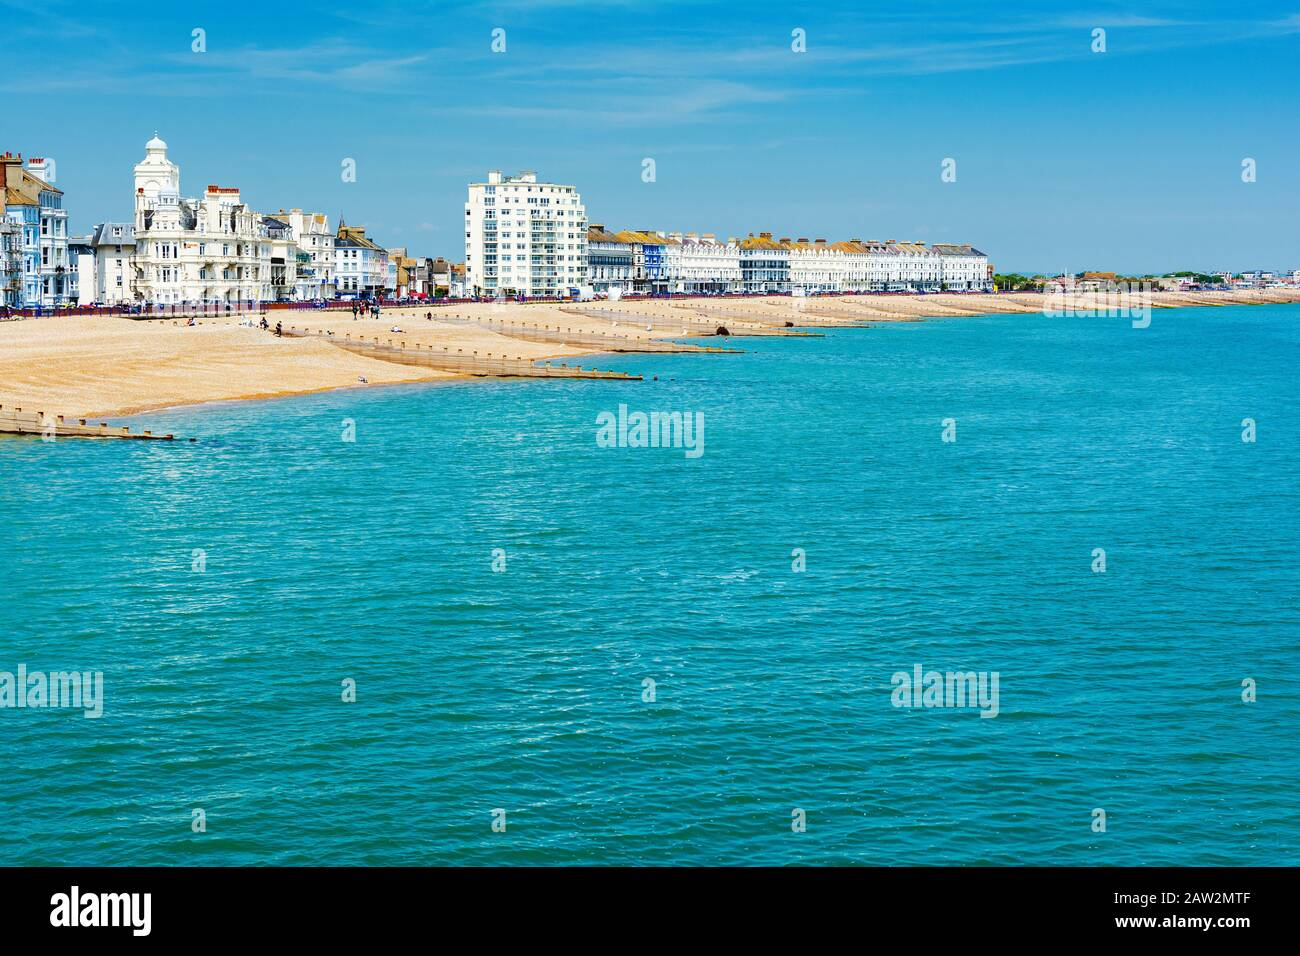 EASTBOURNE, EAST SUSSEX, UK - MAY 23 : View of Eastbourne town seafront, houses and beach from the pier in East Sussex on May 23, 2019 Stock Photo